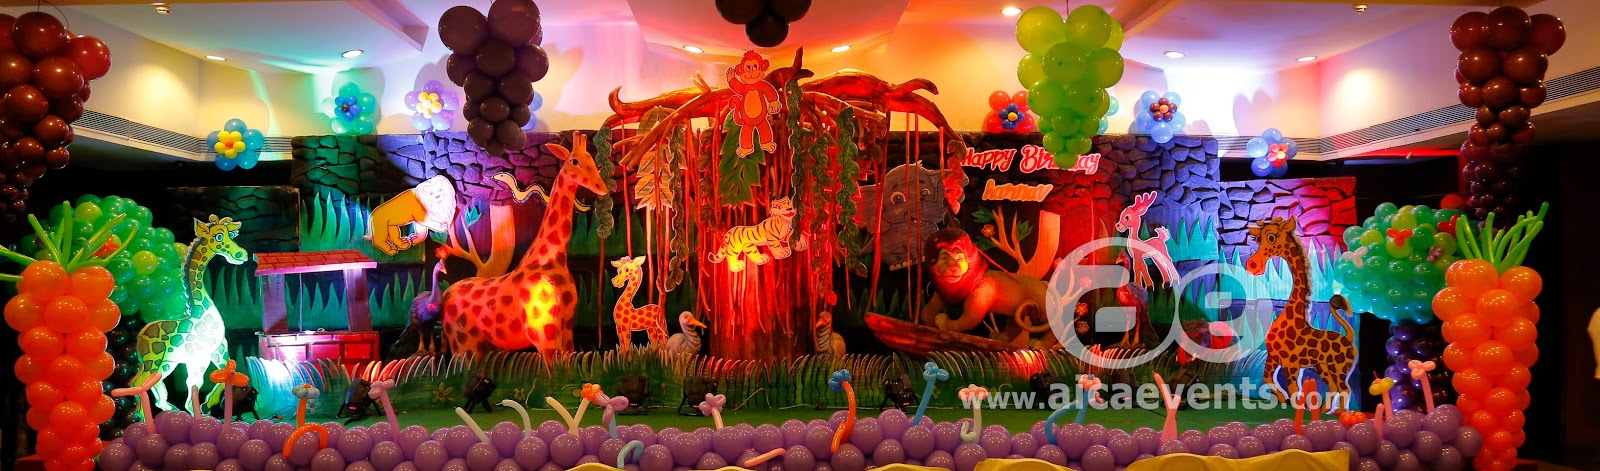 Aicaevents India: Jungle Theme Birthday party Decorations